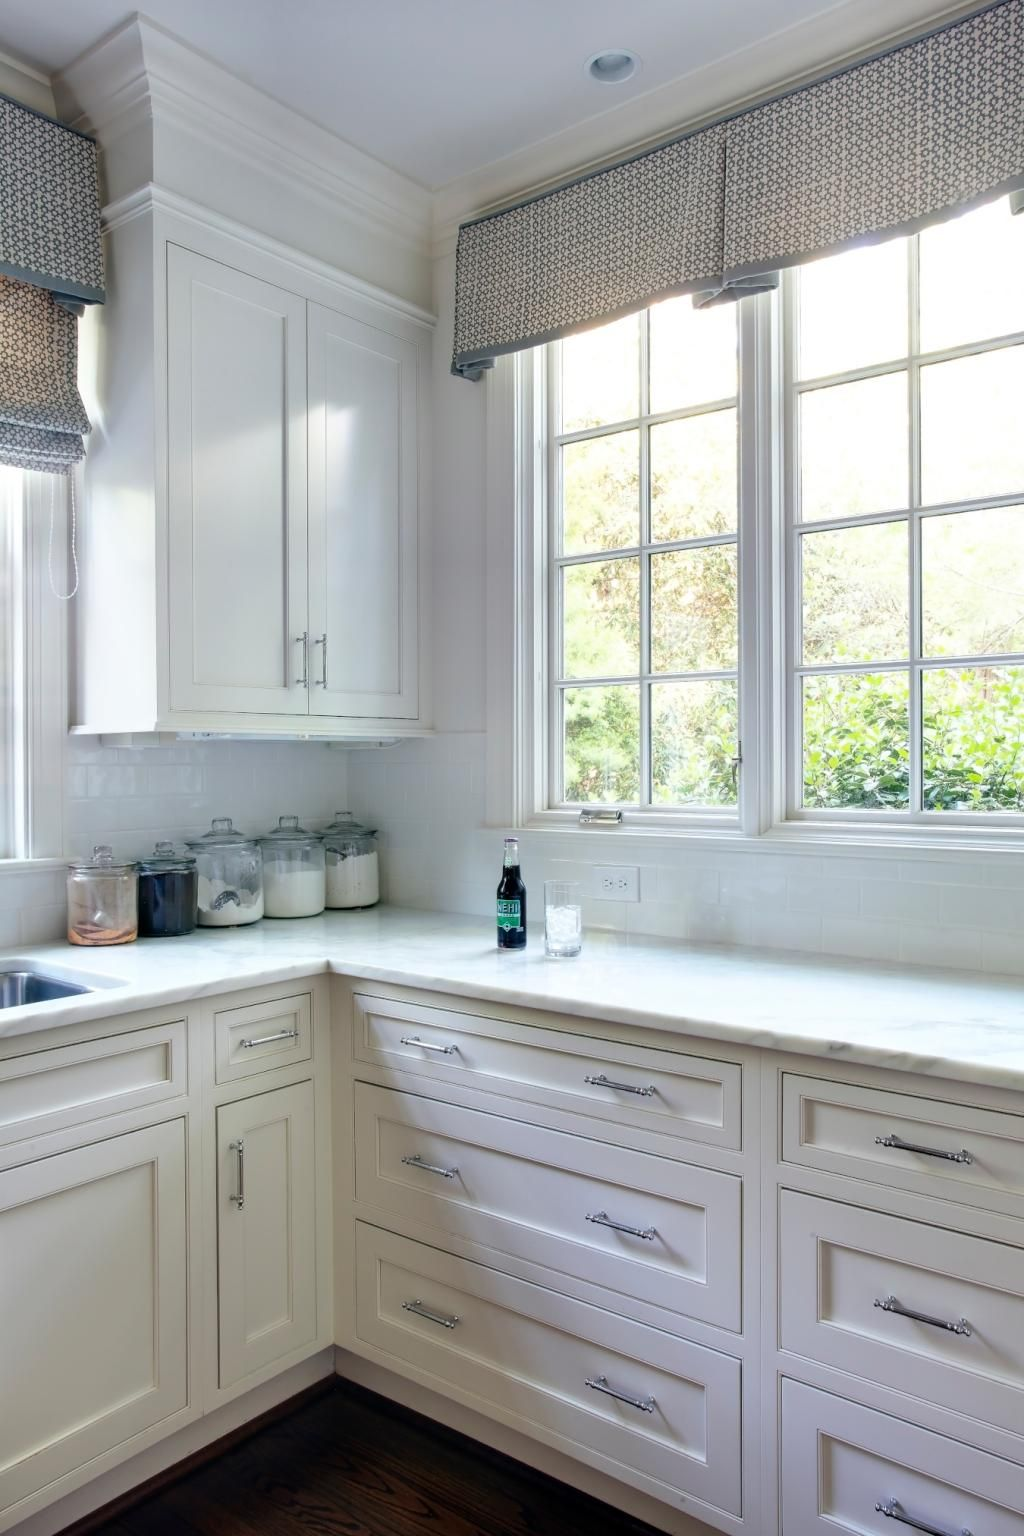 kitchen inspiration white marble cabinetry lots of windows kitchen window treatments on kitchen interior with window id=49567